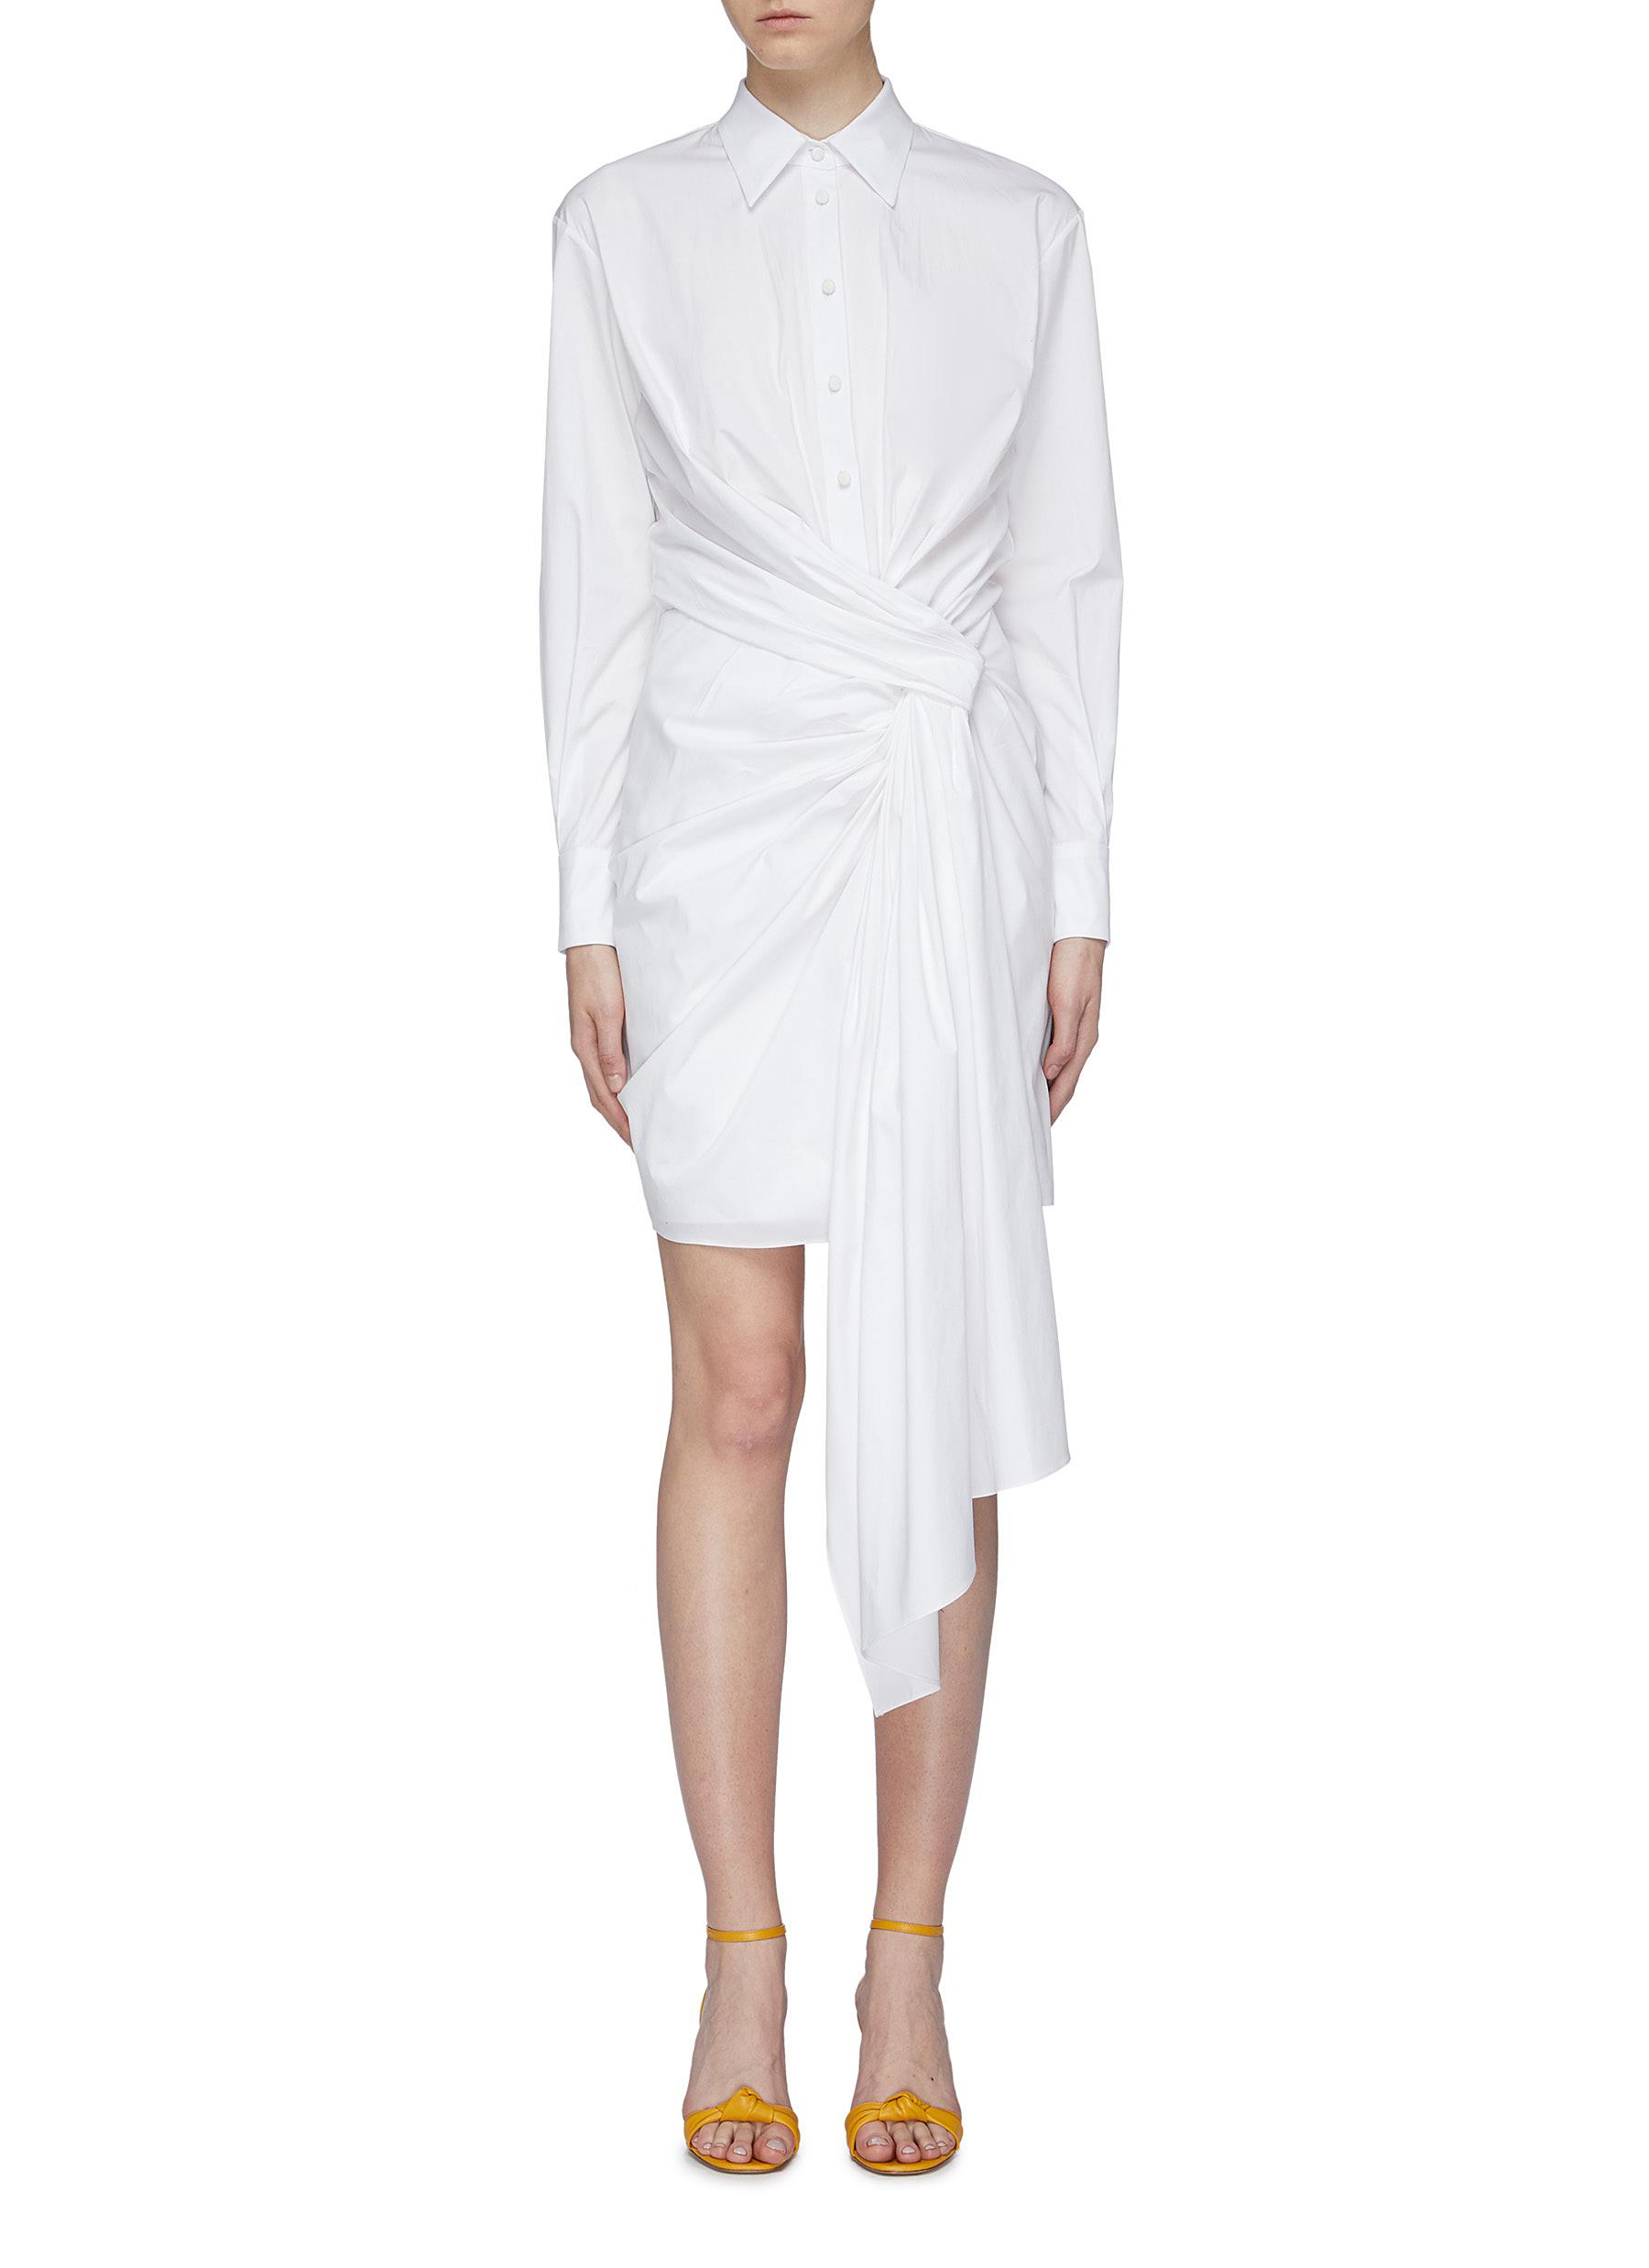 Knot front drape shirt dress by Oscar De La Renta